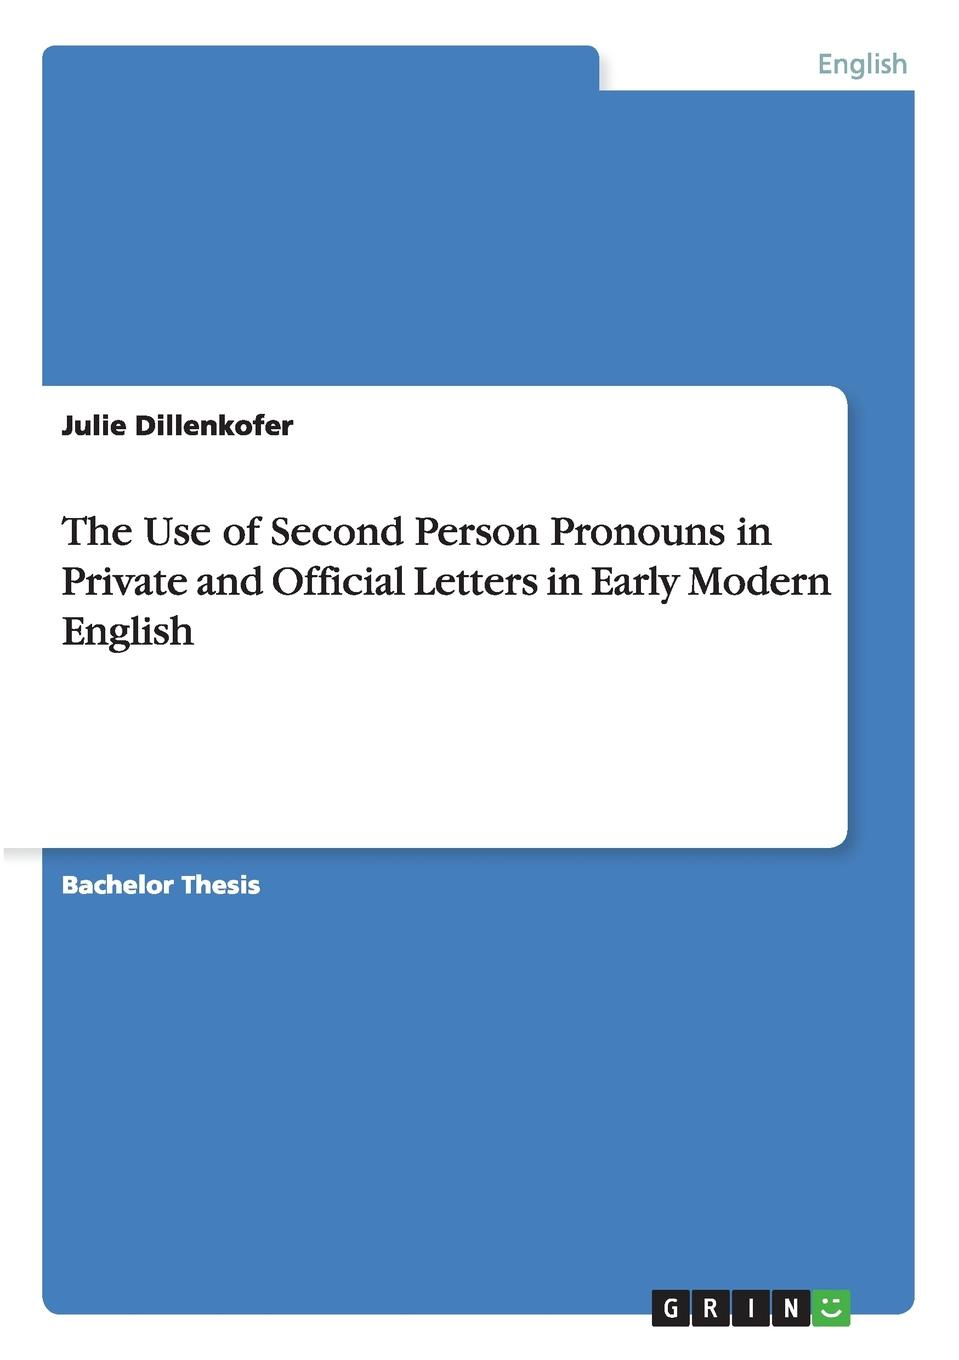 Julie Dillenkofer The Use of Second Person Pronouns in Private and Official Letters in Early Modern English private pages